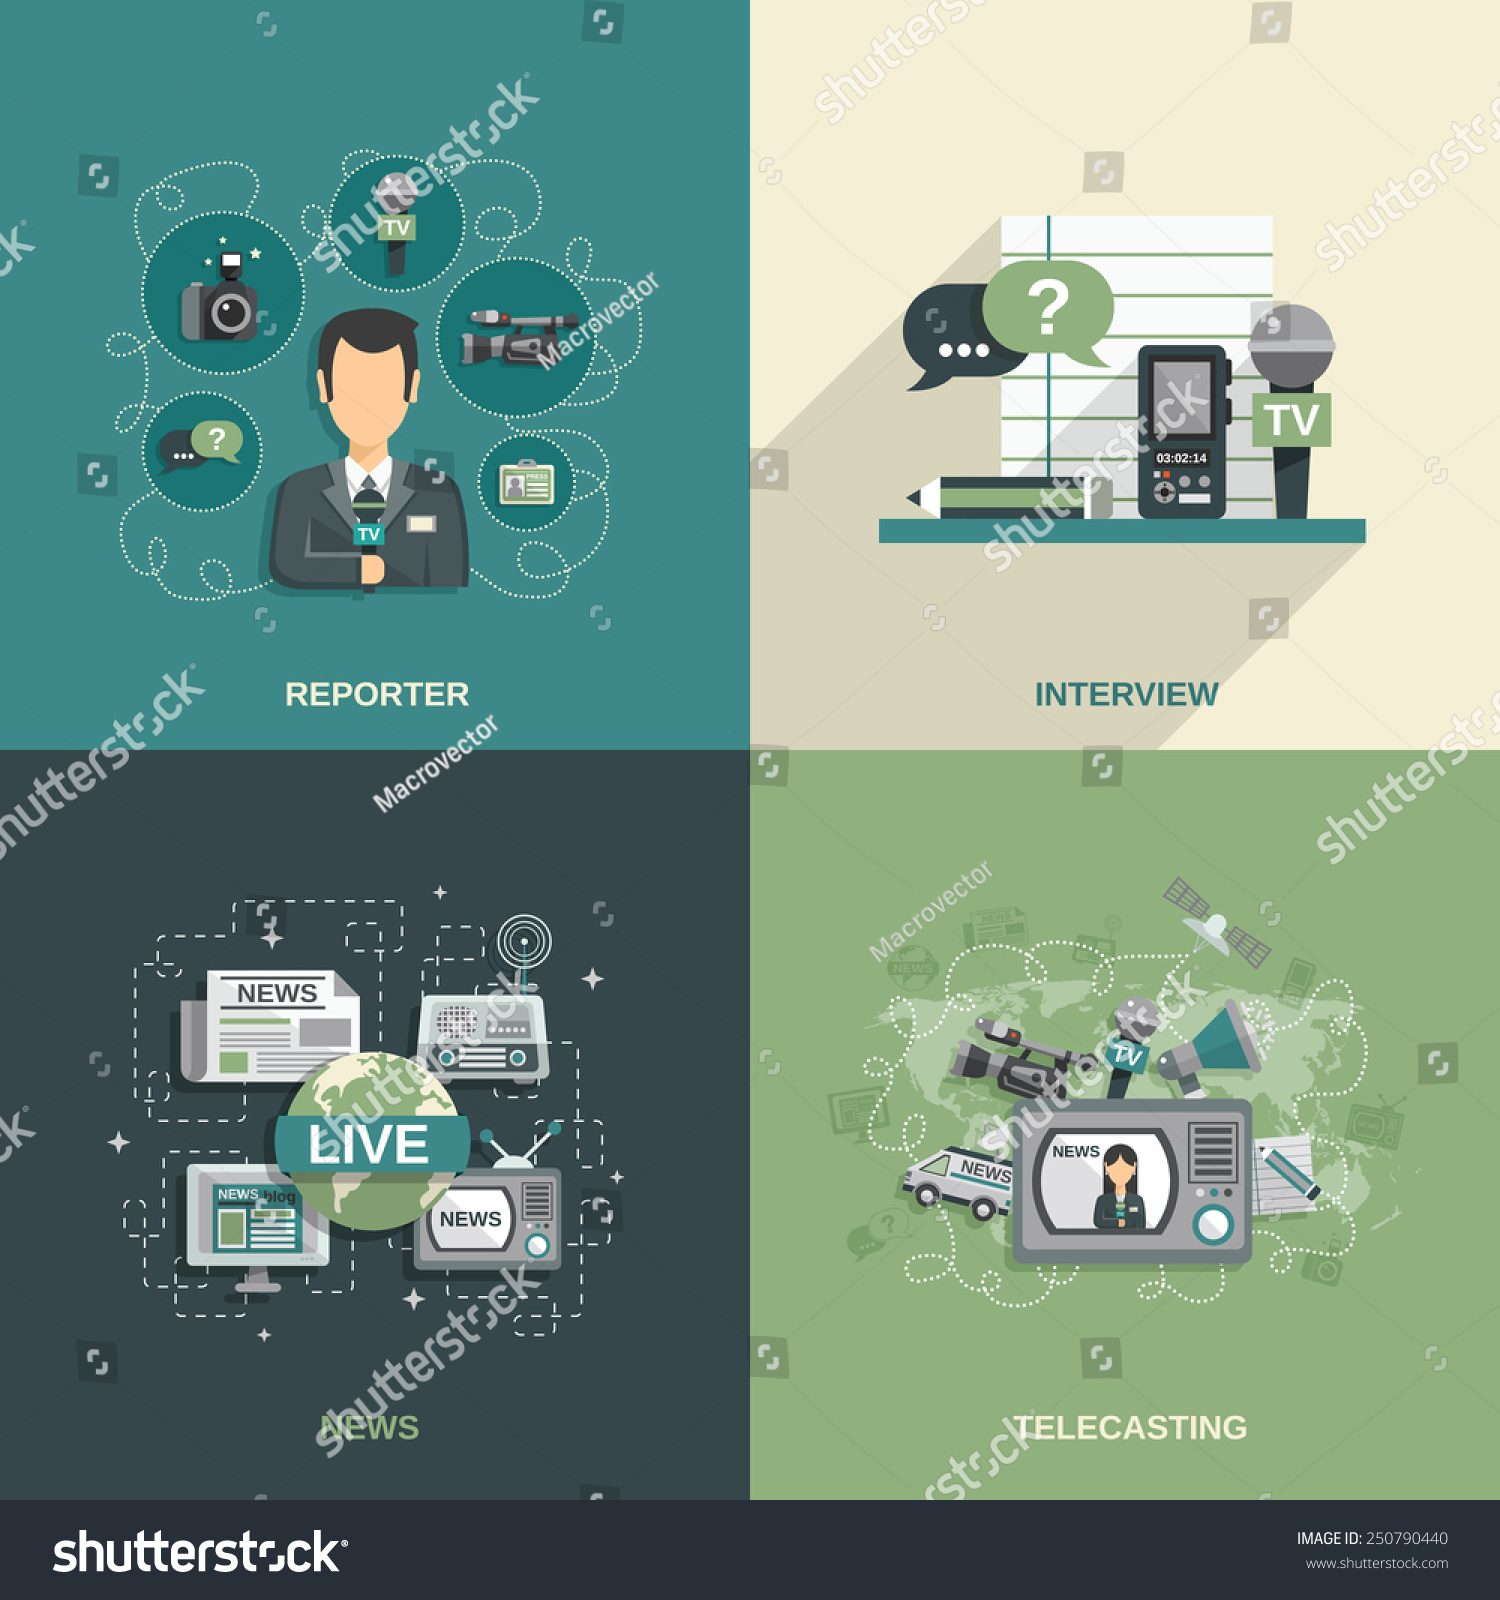 Journalist design concept set with reporter interview news telecasting flat icons isolated vector illustration